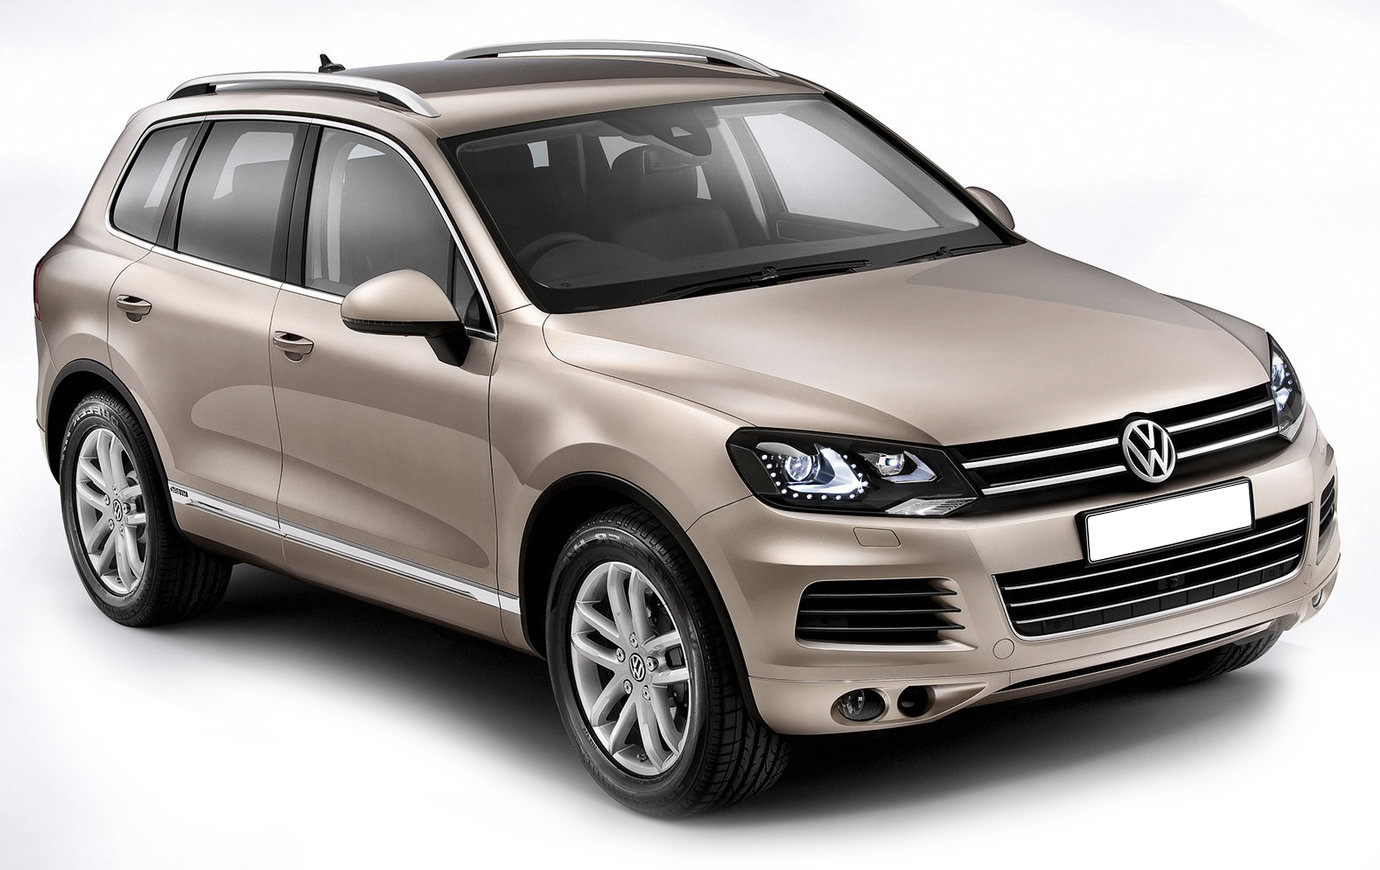 volkswagen touareg v6 tdi 4x4. Black Bedroom Furniture Sets. Home Design Ideas